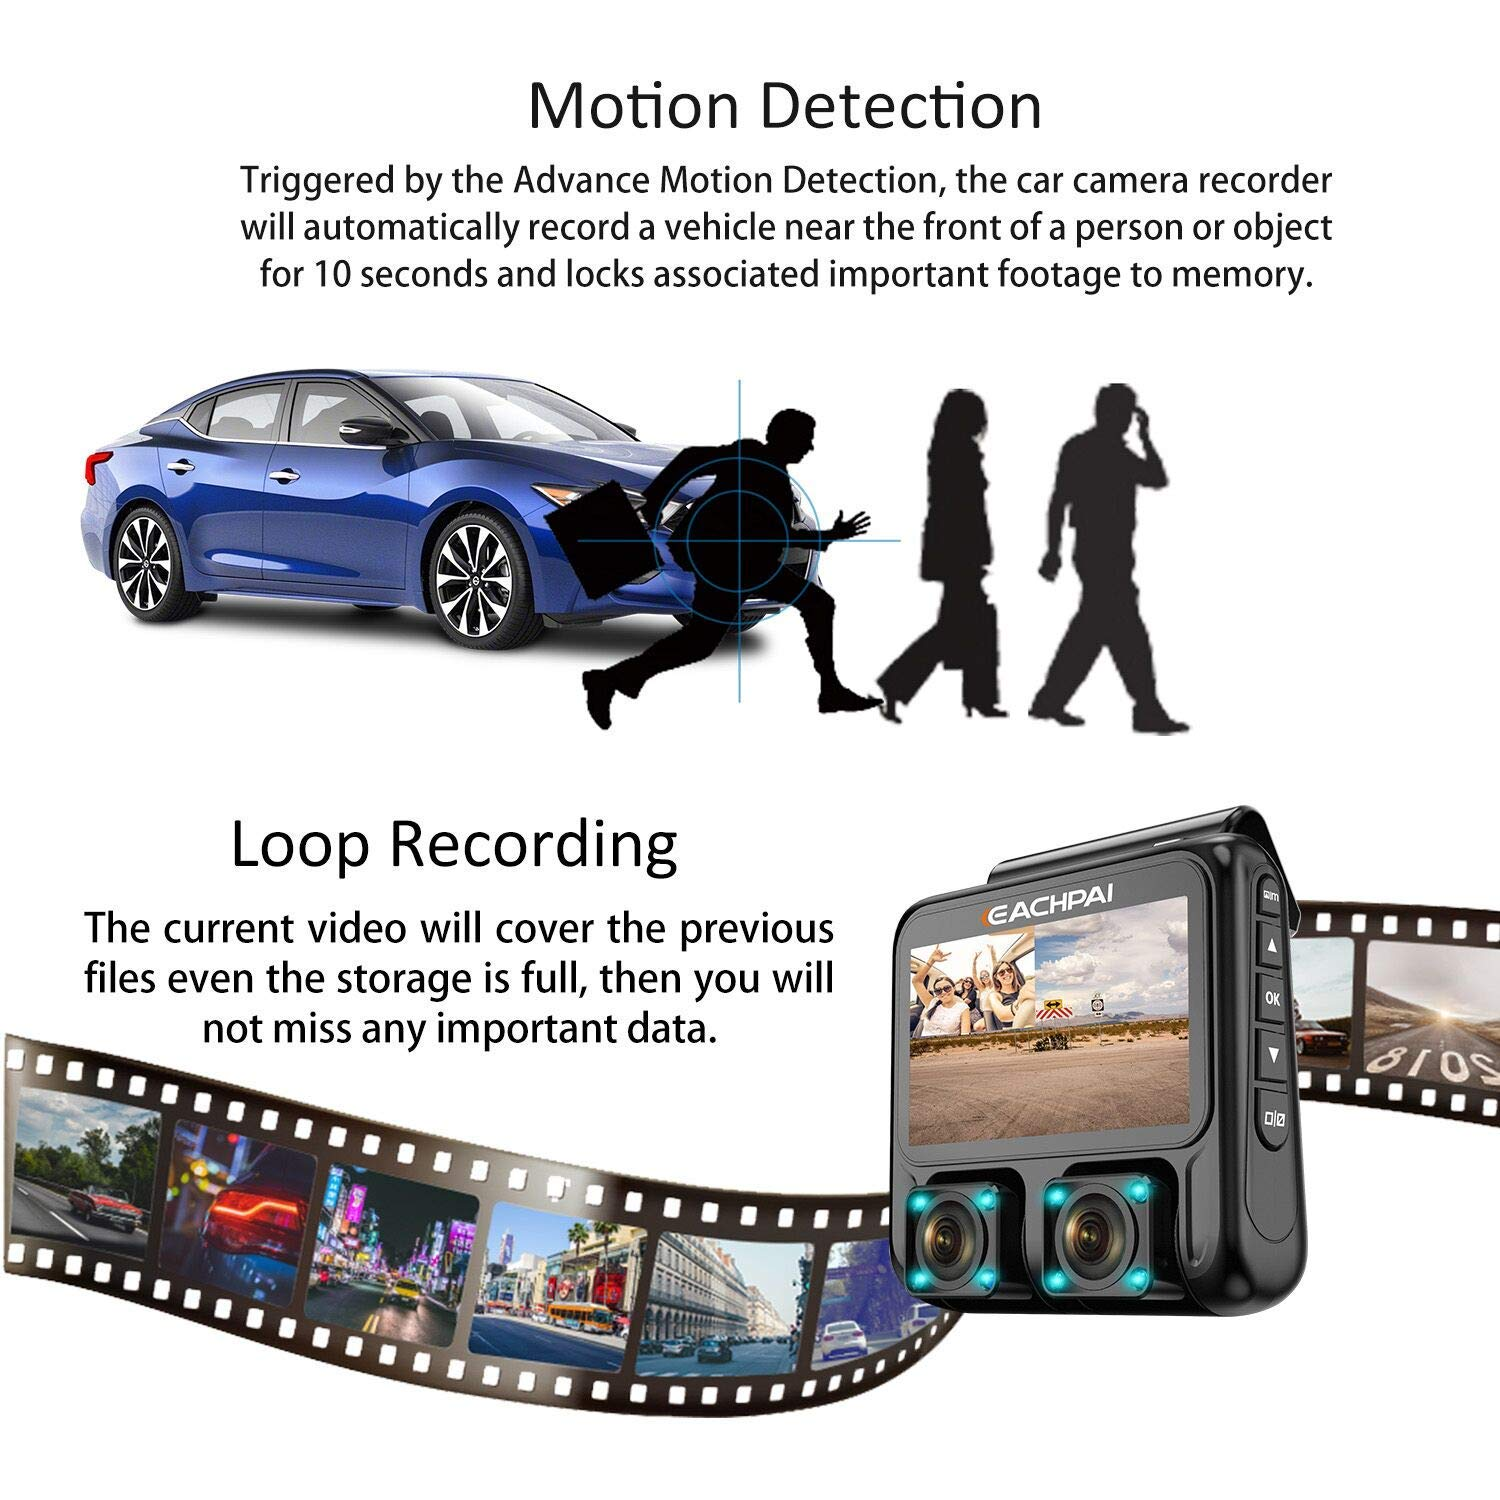 Dual Dash Cam,EACHPAI X100 Pro Dash Camera Front &Inside Lens for Cars/Truck/Taxi 1920X1080P Dashboard with Sony Sensor,IR Night Vision,Super Capacitor,Wide Angle,Loop Record,WDR,GPS,32G Card